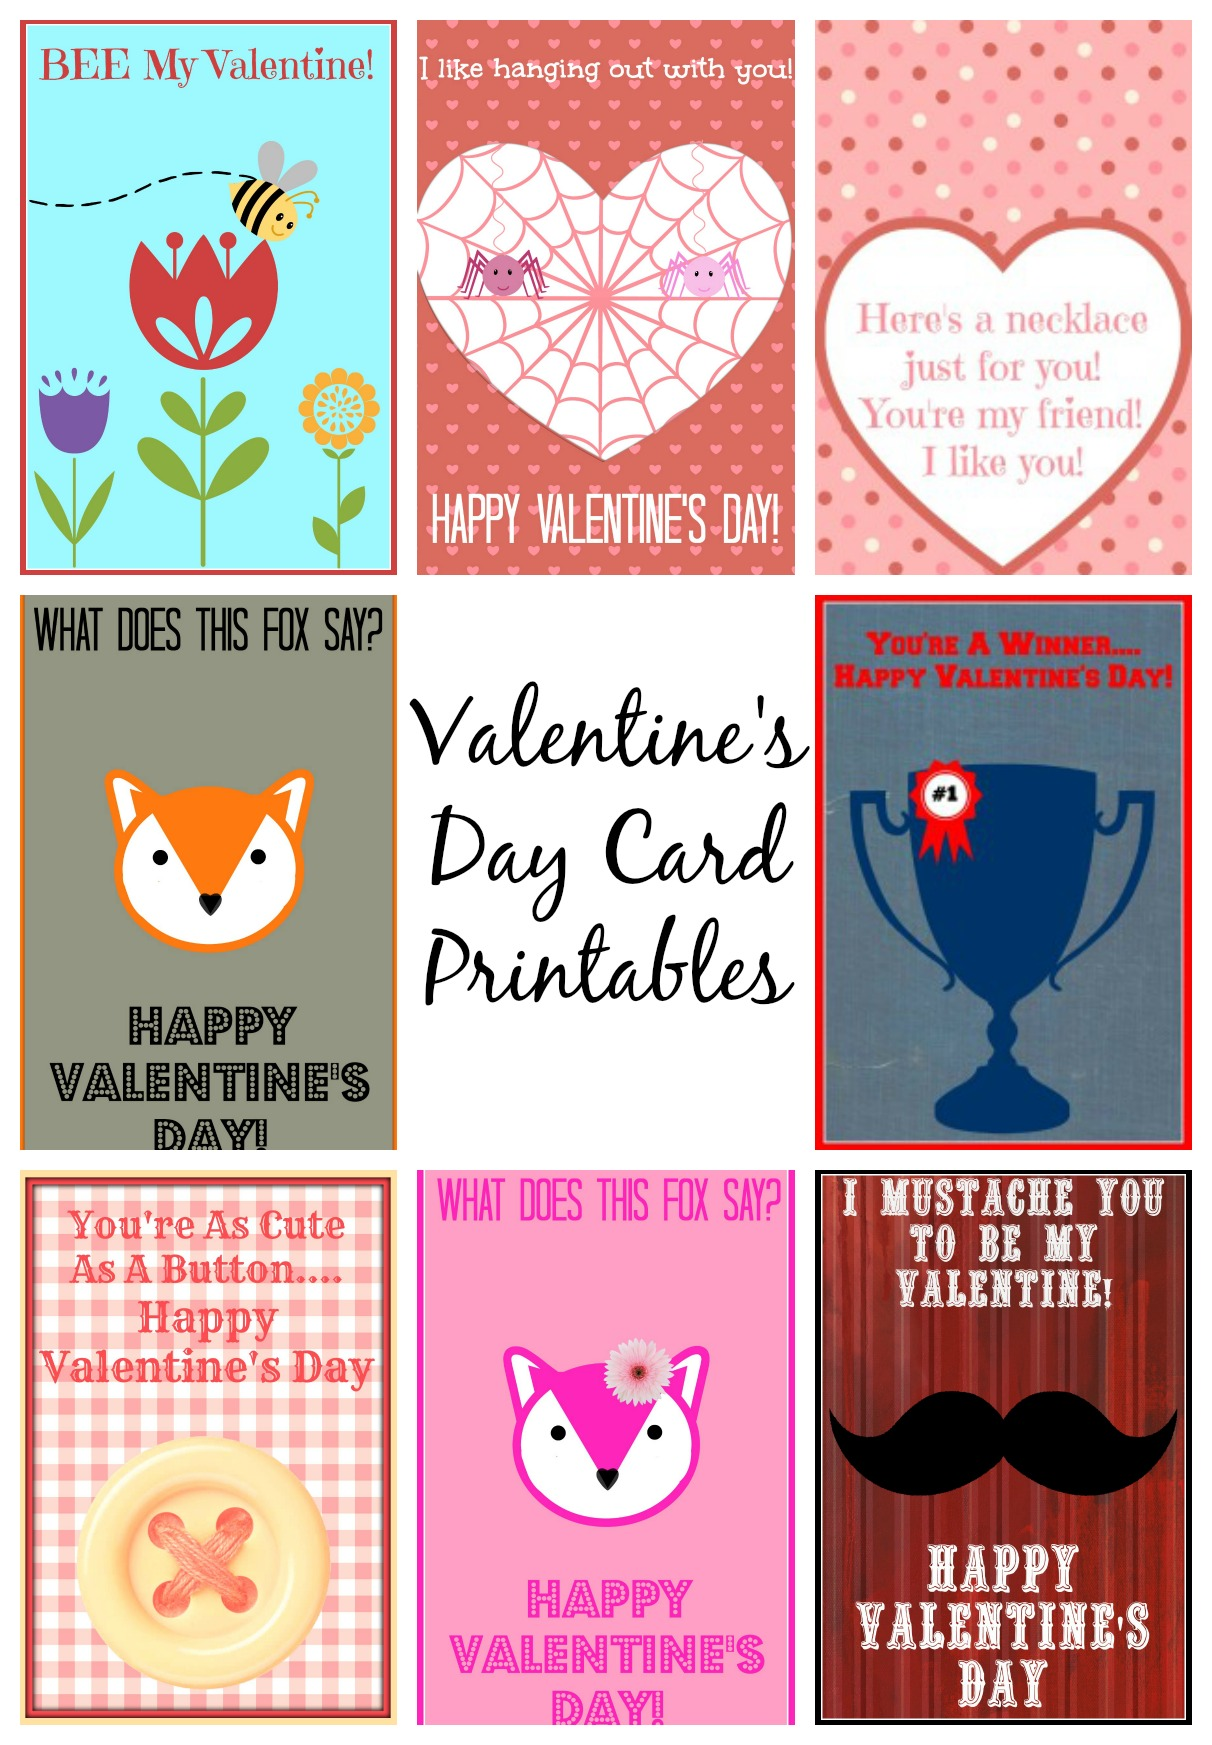 This is a picture of Playful Downloadable Valentines Card